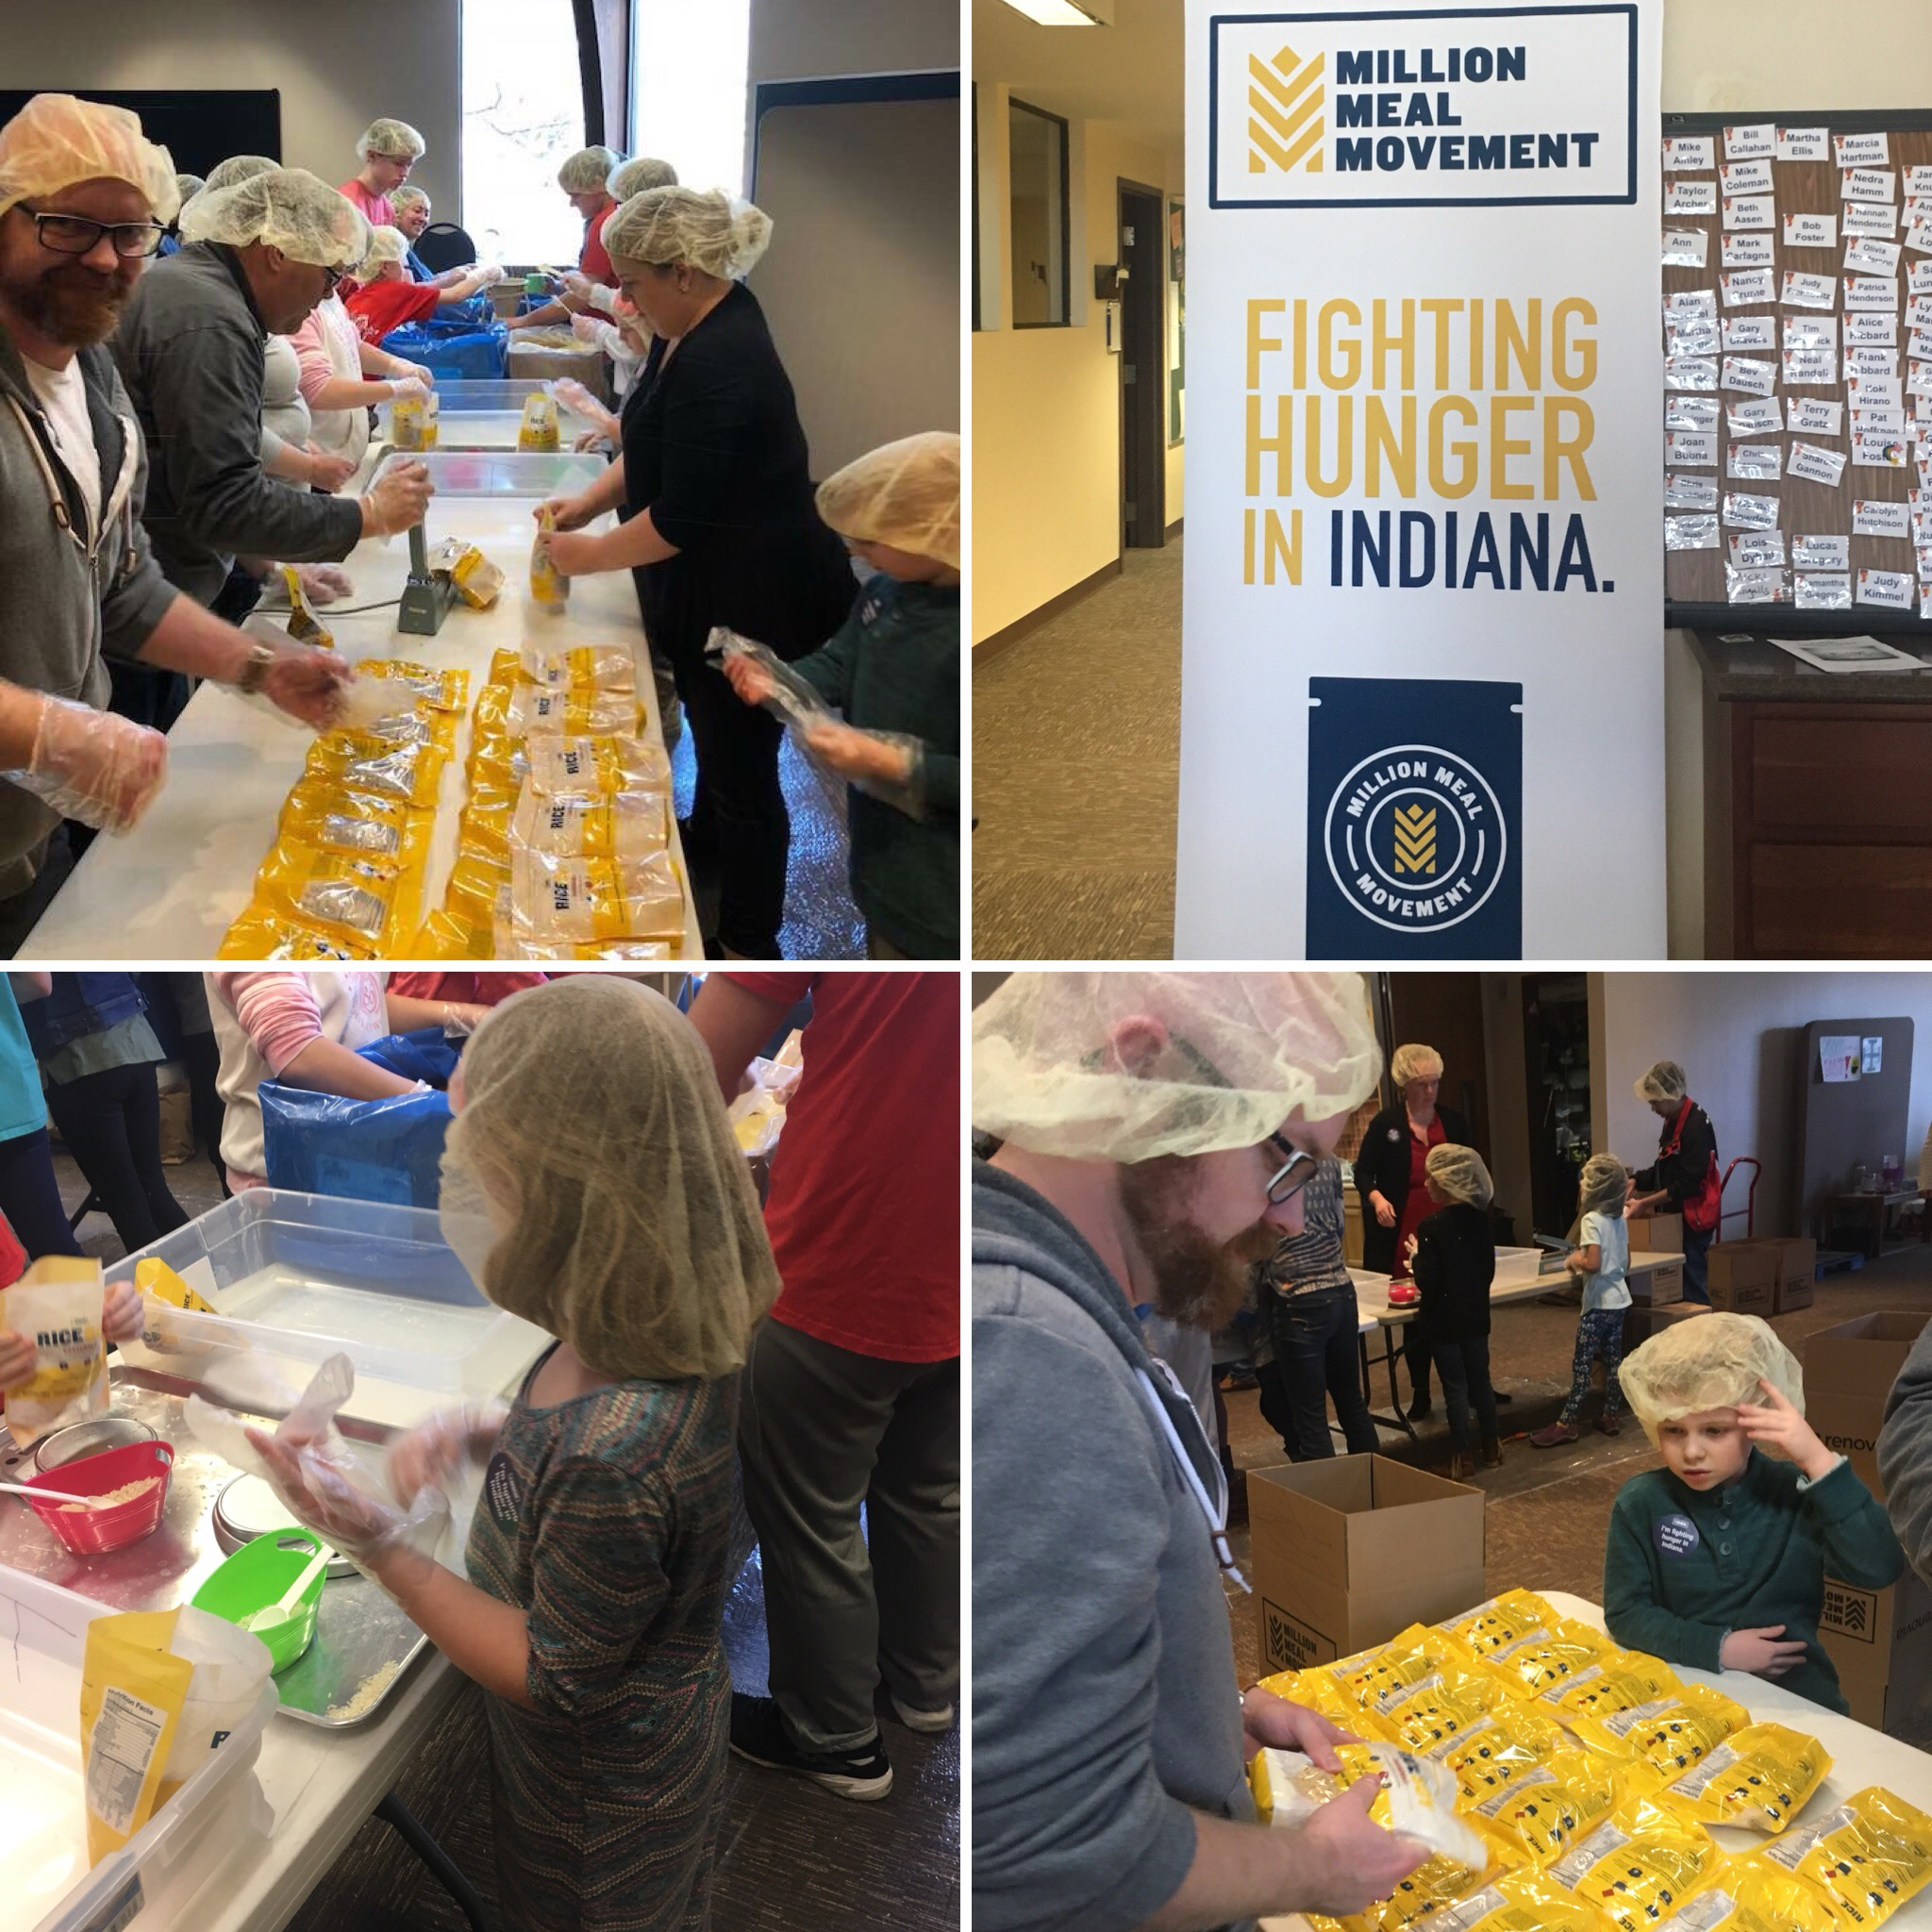 Our Marketing/Business Director Katie and her family worked alongside others to help pack 20,000 meals with Million Meals Movement which works for those in Indiana fighting hunger.